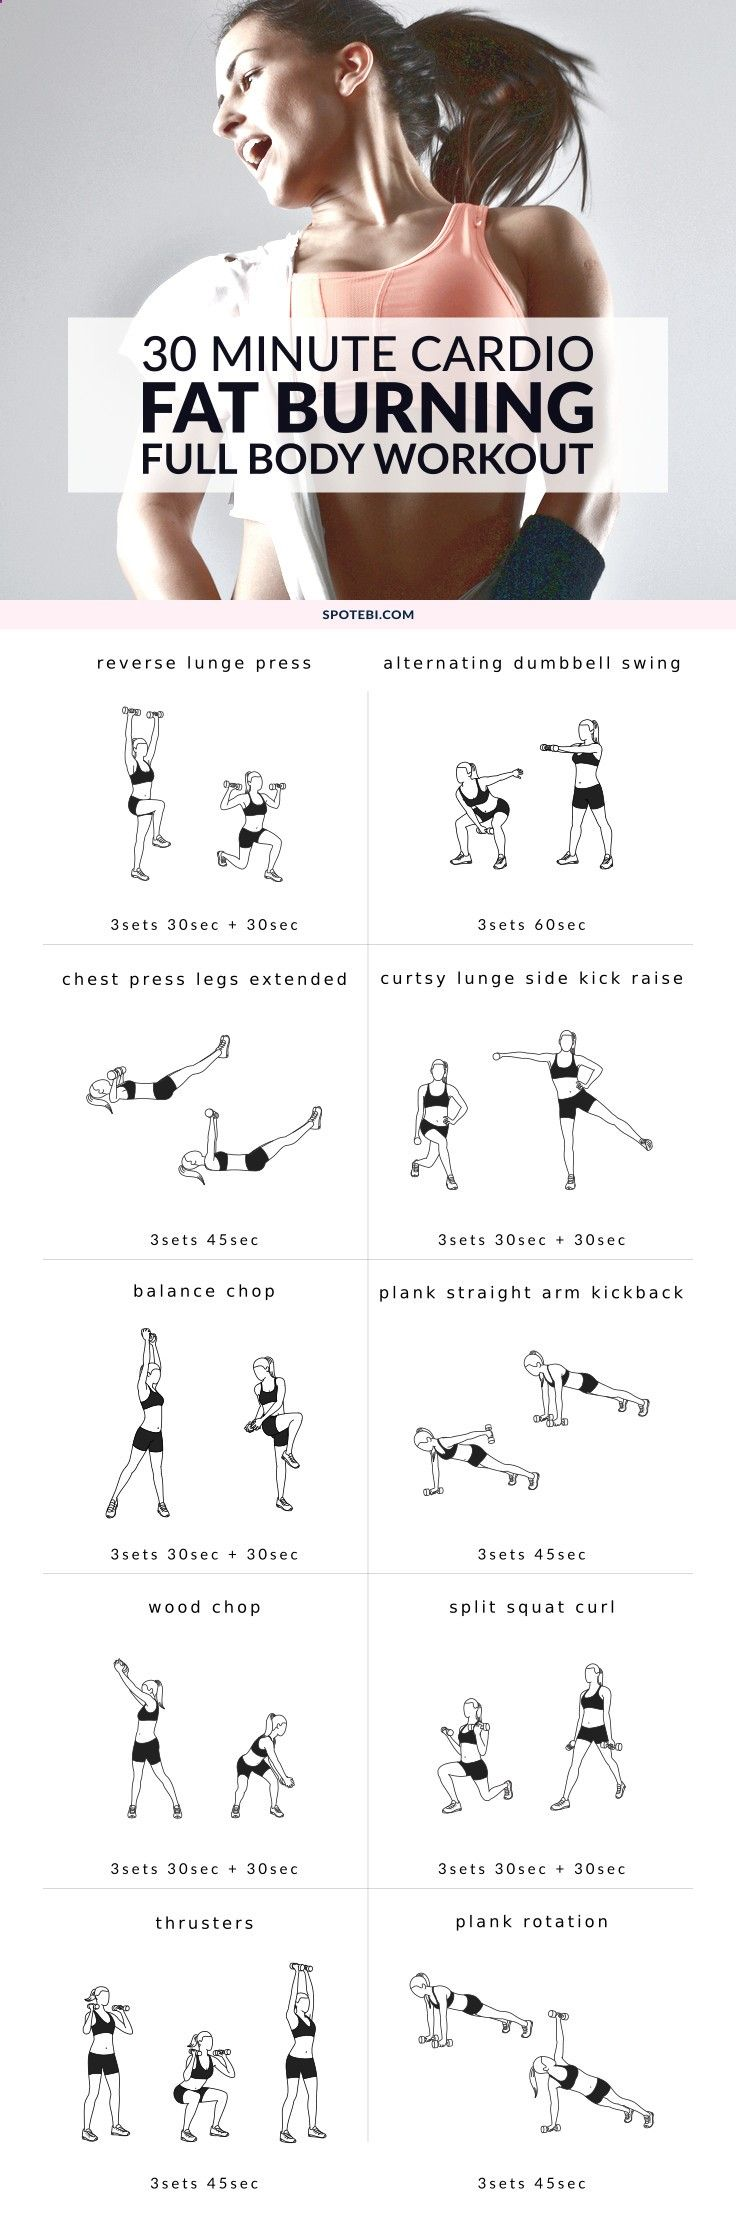 Burn extra calories with this 30-minute full body fat burning workout routine. A set of 10 compound movements to strengthen your heart and lungs, boost your metabolism and tighten your body. www.spotebi.stfi....